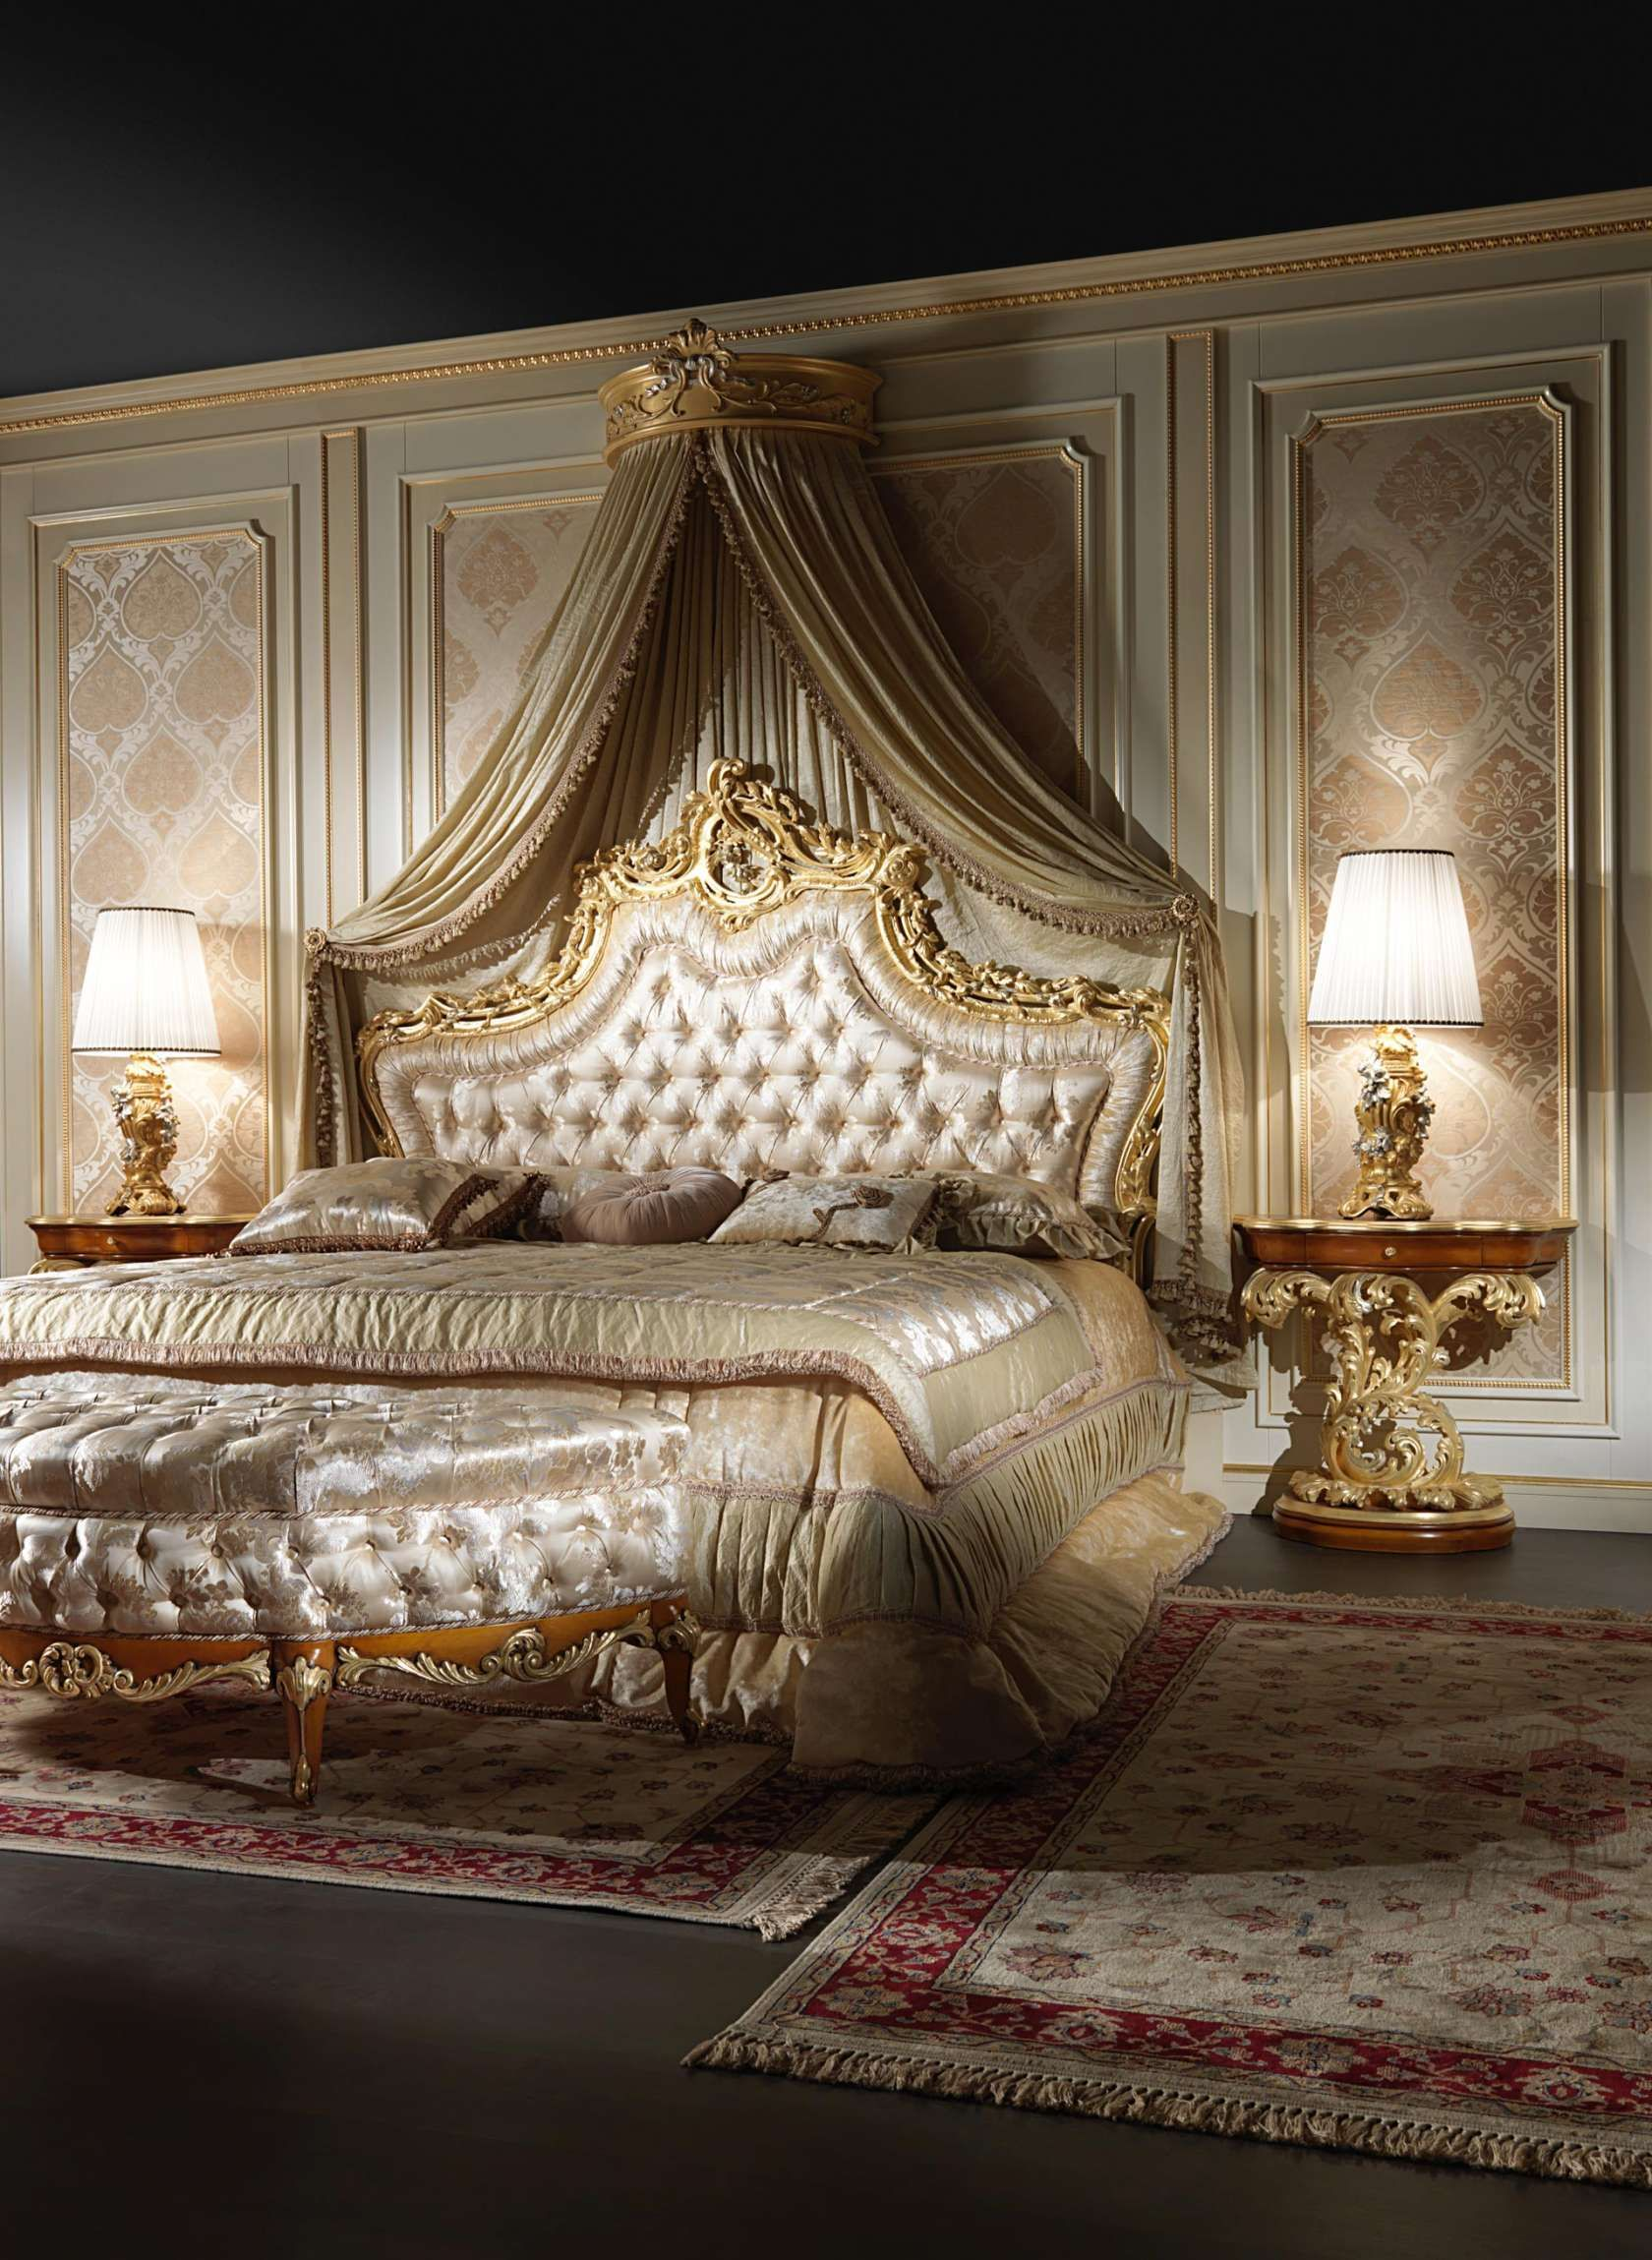 Modern Baroque Bedroom Baroque Bedroom Furniture Art 2012 Roman Baroque Style